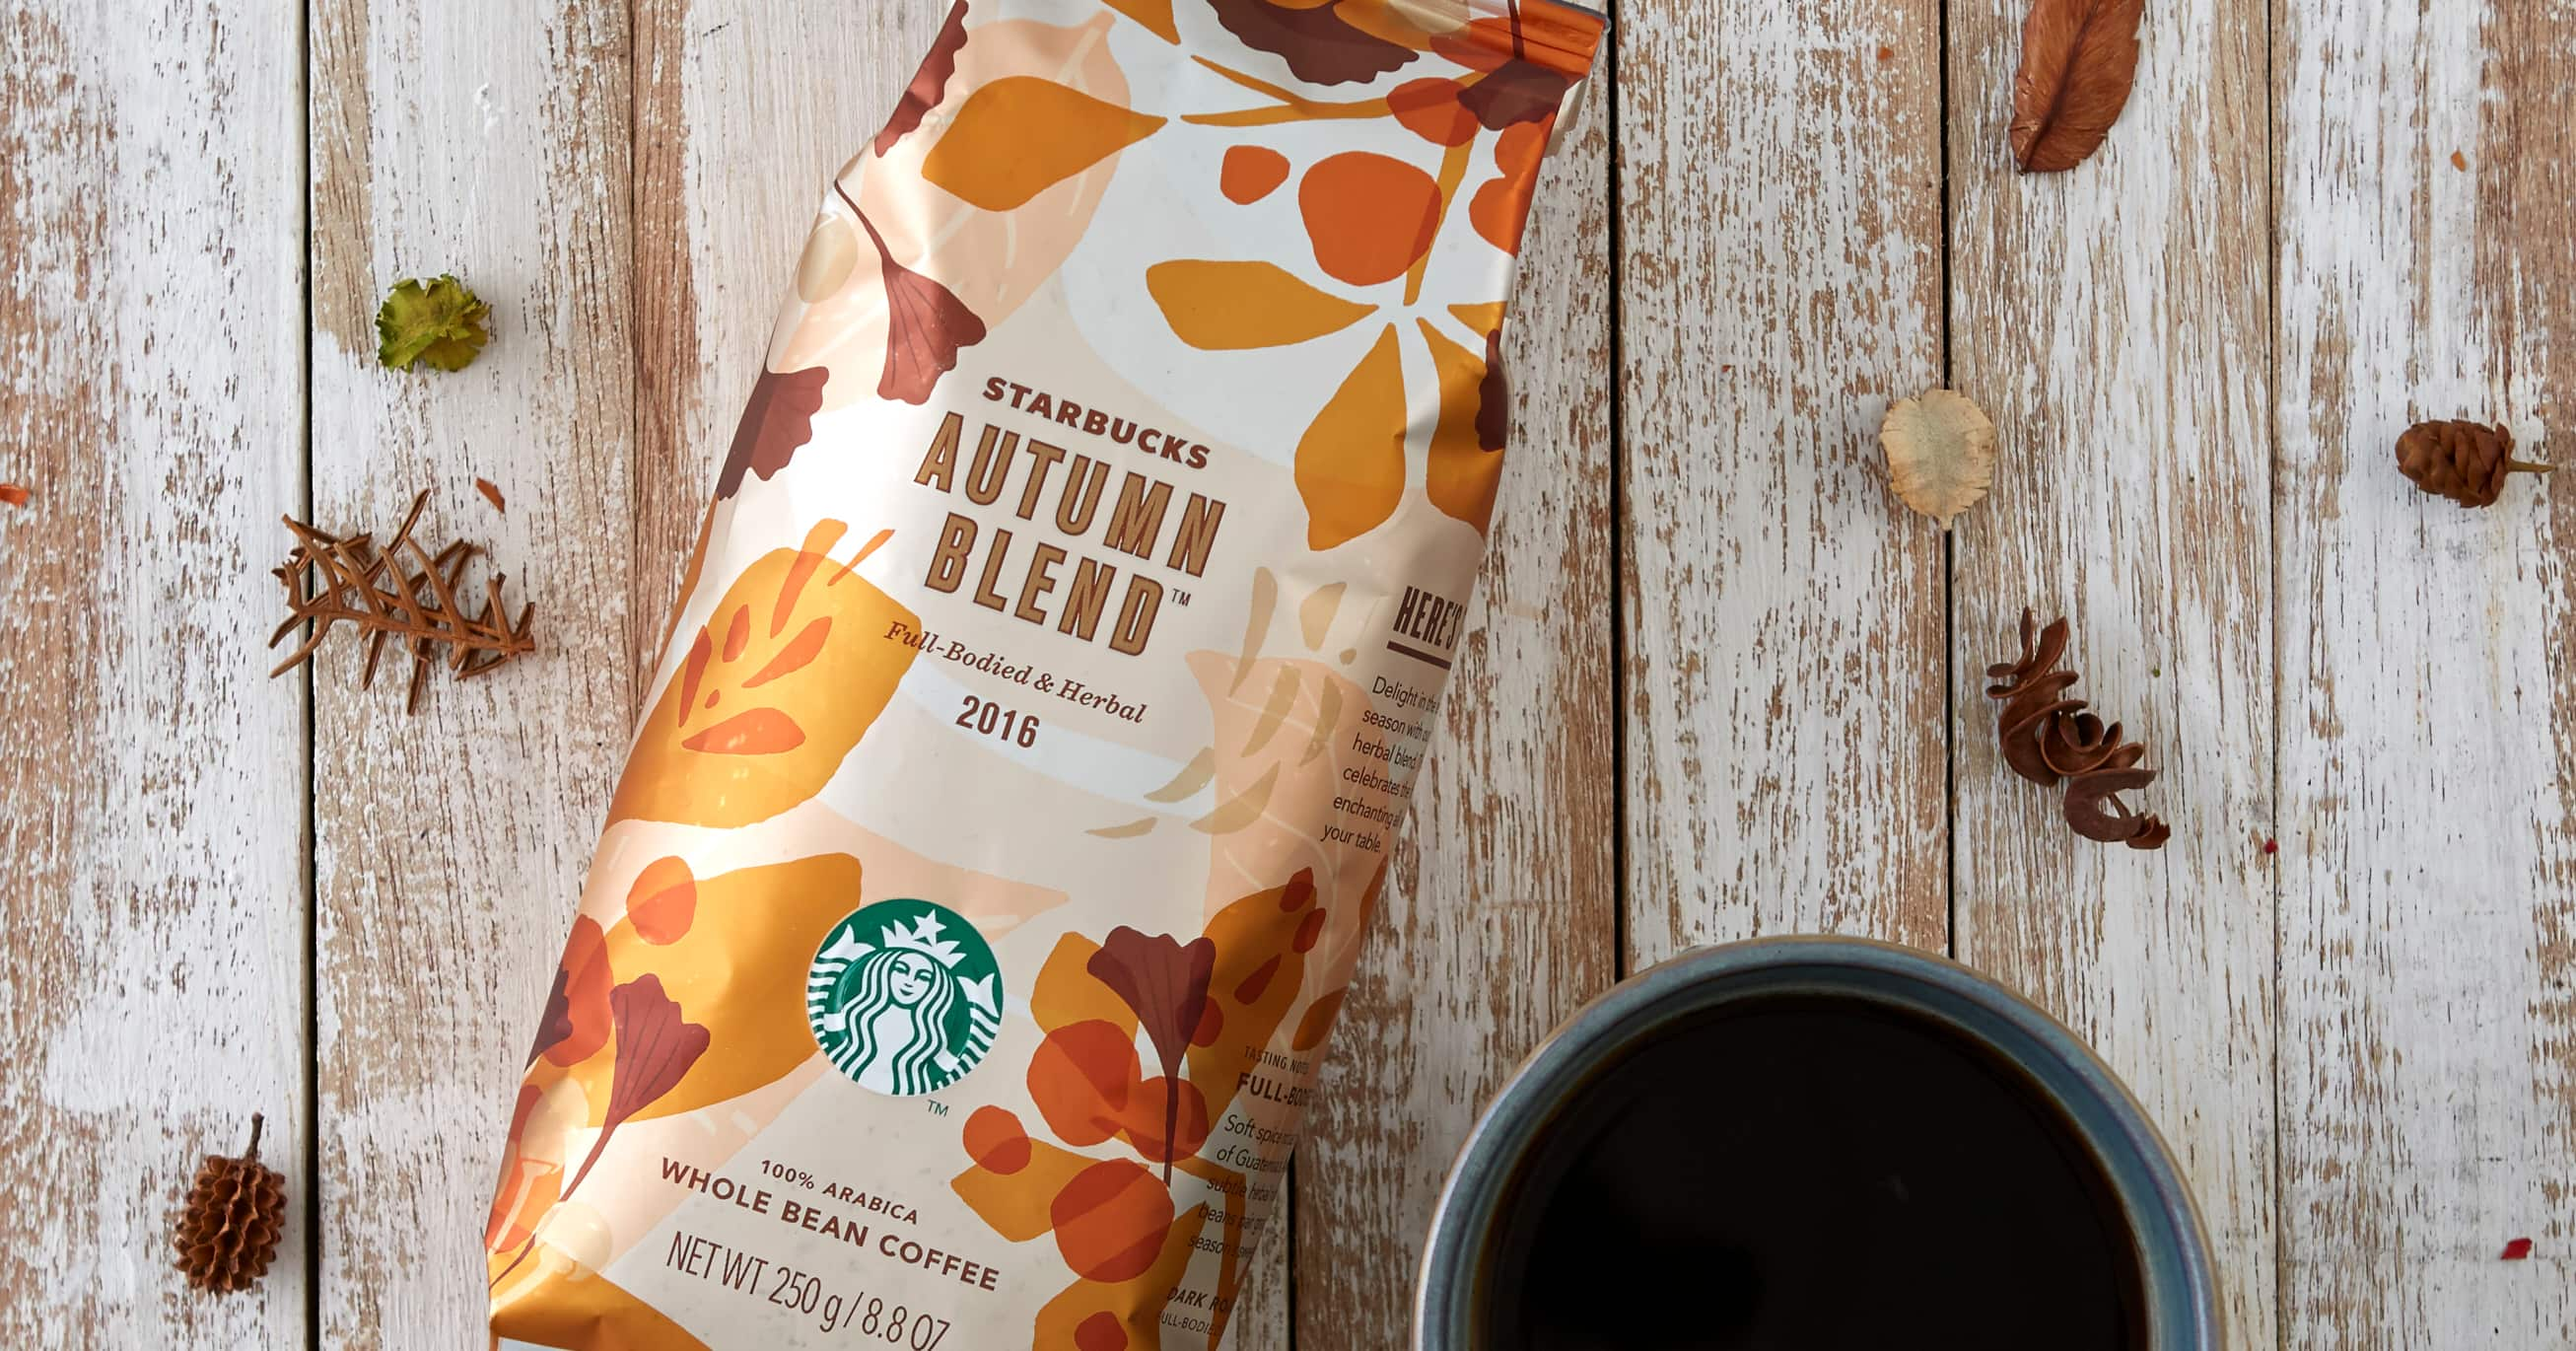 Autumn Blend Coffee Packet